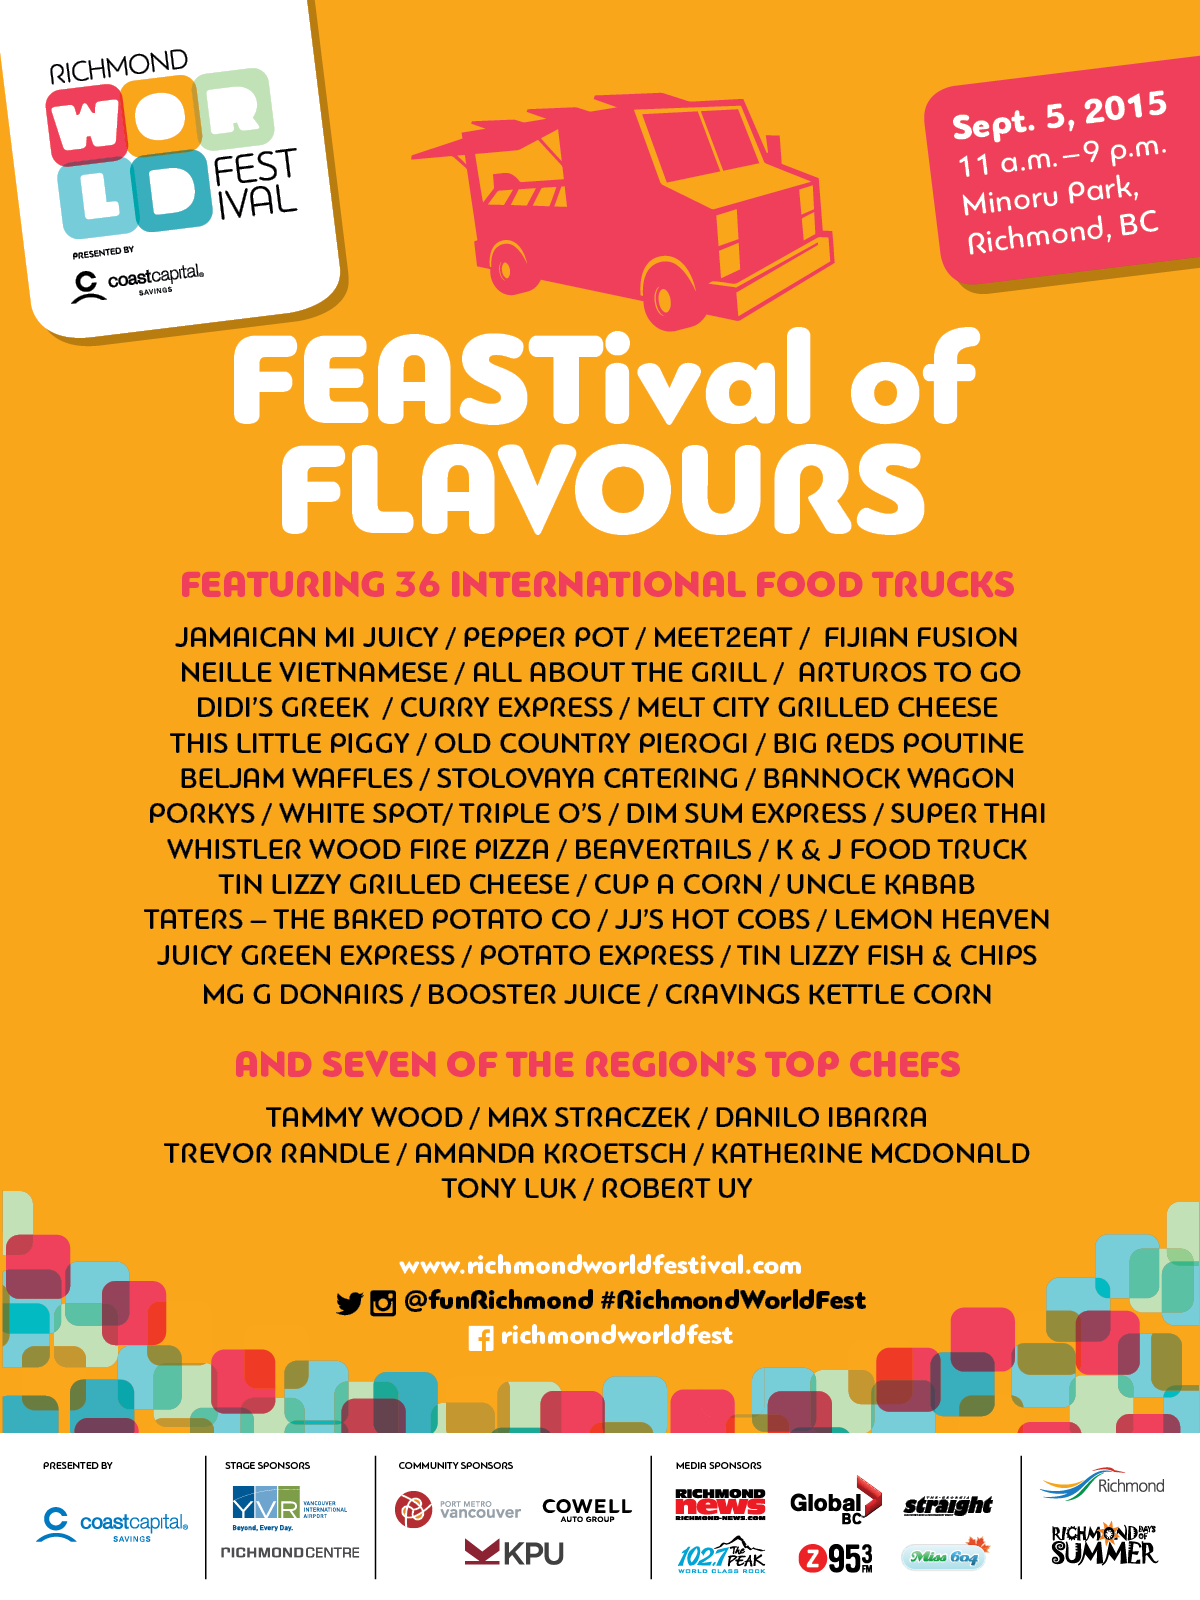 2105_RWF_Feastival of Flavours_Web Graphic